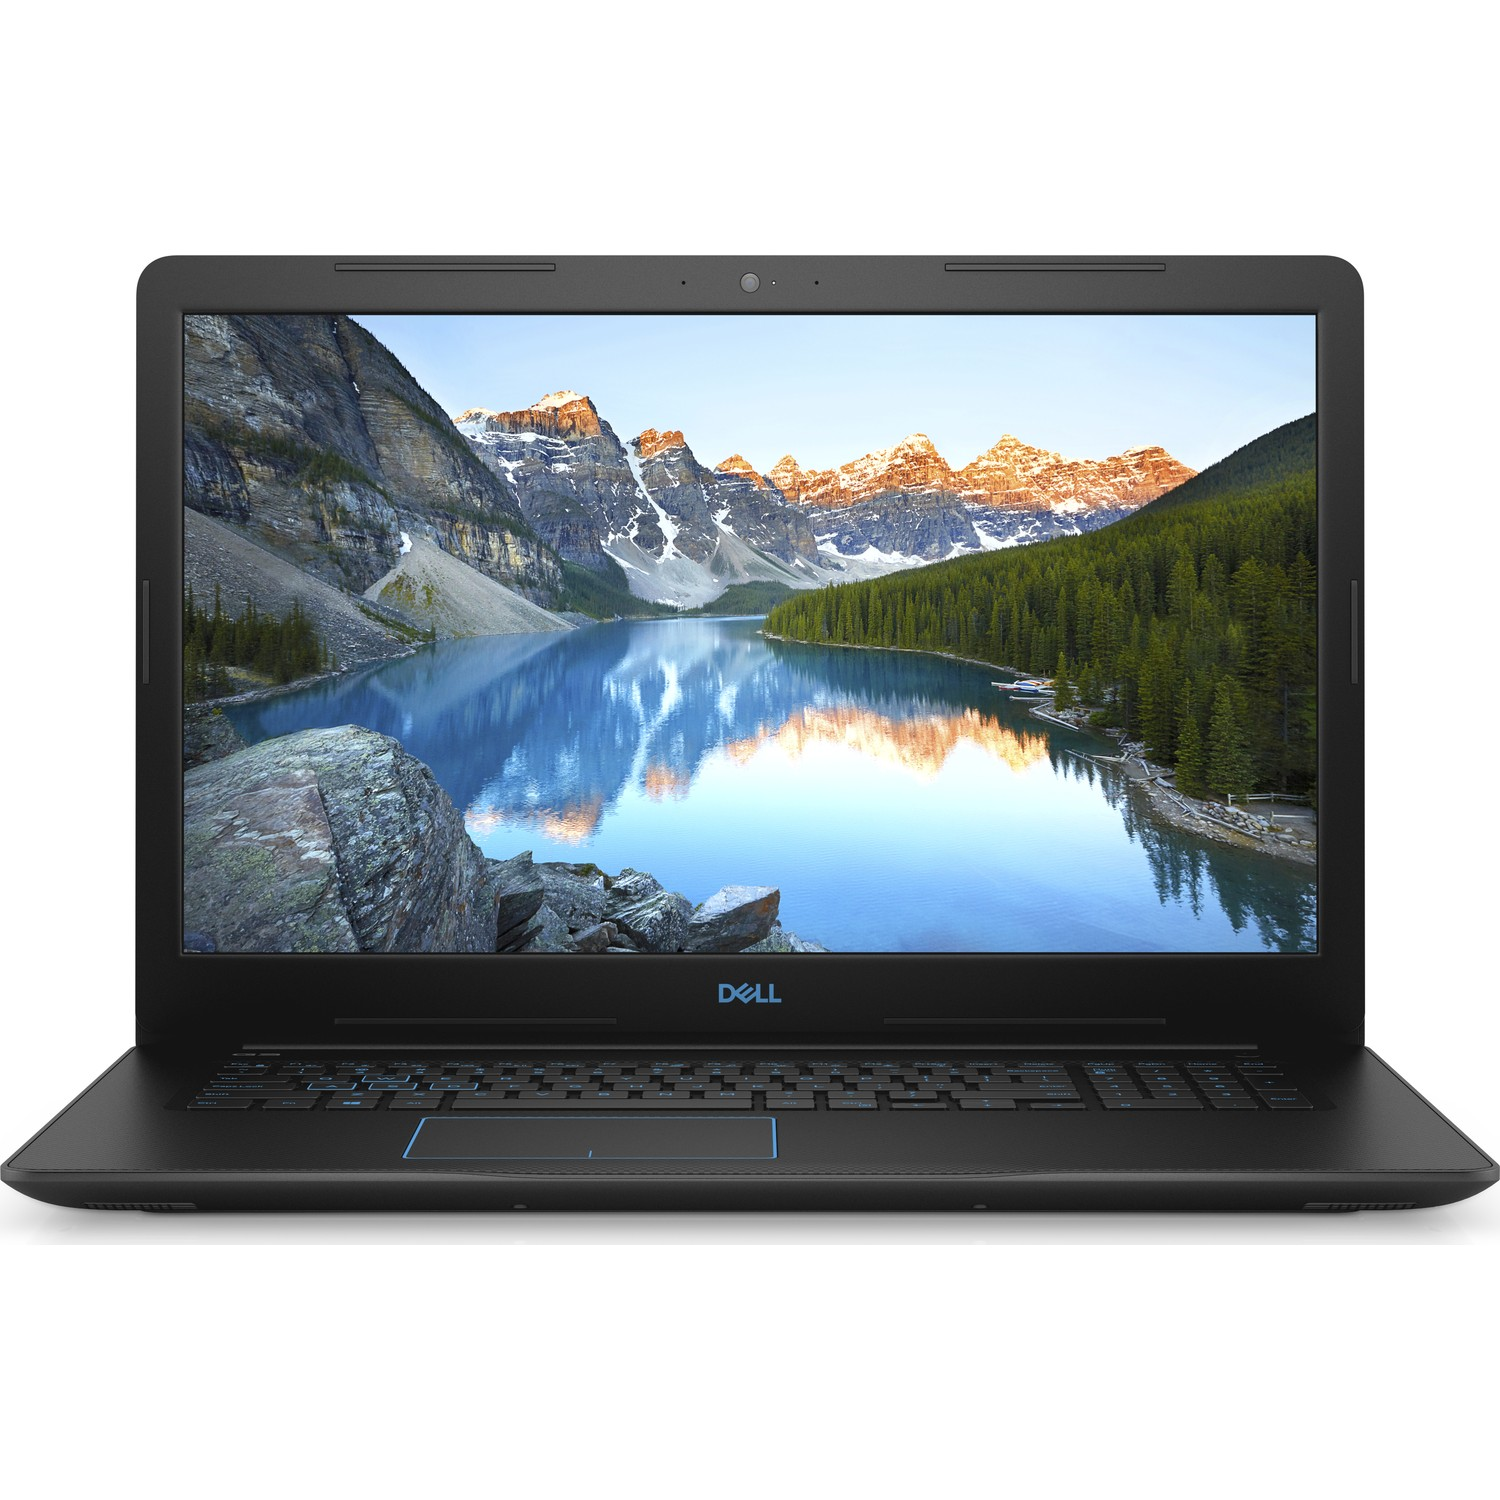 "DELL G317 FB75D128F161C I7-8750HQ 16GB 128GB SSD 1TB 4GB GTX1050Ti 17.3"" FHD FREEDOS GAMING NOTEBOOK"